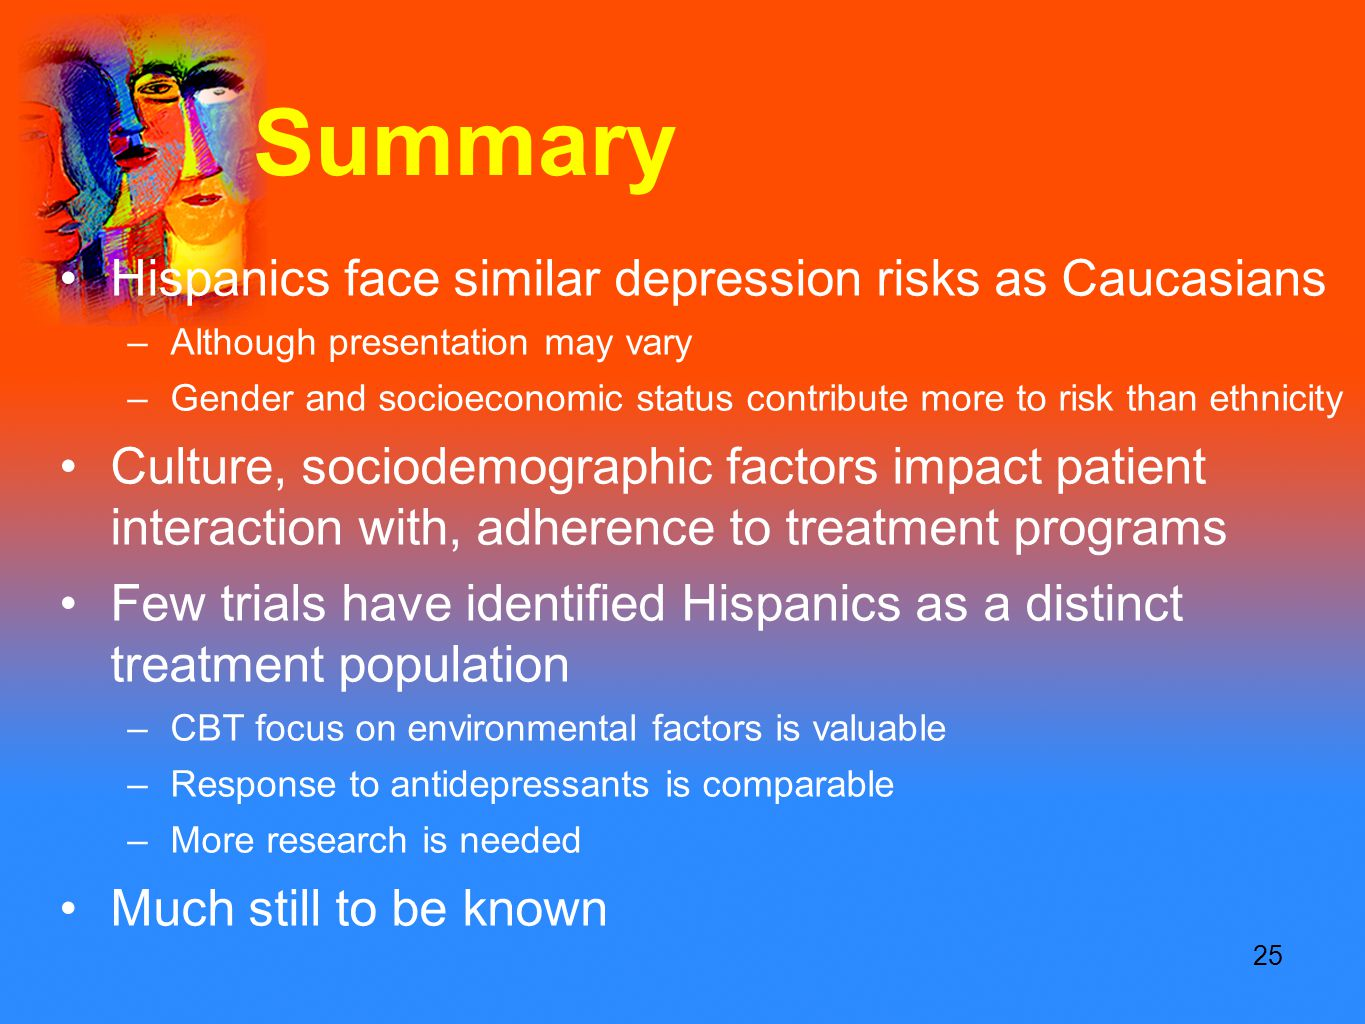 25 Summary Hispanics face similar depression risks as Caucasians –Although presentation may vary –Gender and socioeconomic status contribute more to risk than ethnicity Culture, sociodemographic factors impact patient interaction with, adherence to treatment programs Few trials have identified Hispanics as a distinct treatment population –CBT focus on environmental factors is valuable –Response to antidepressants is comparable –More research is needed Much still to be known